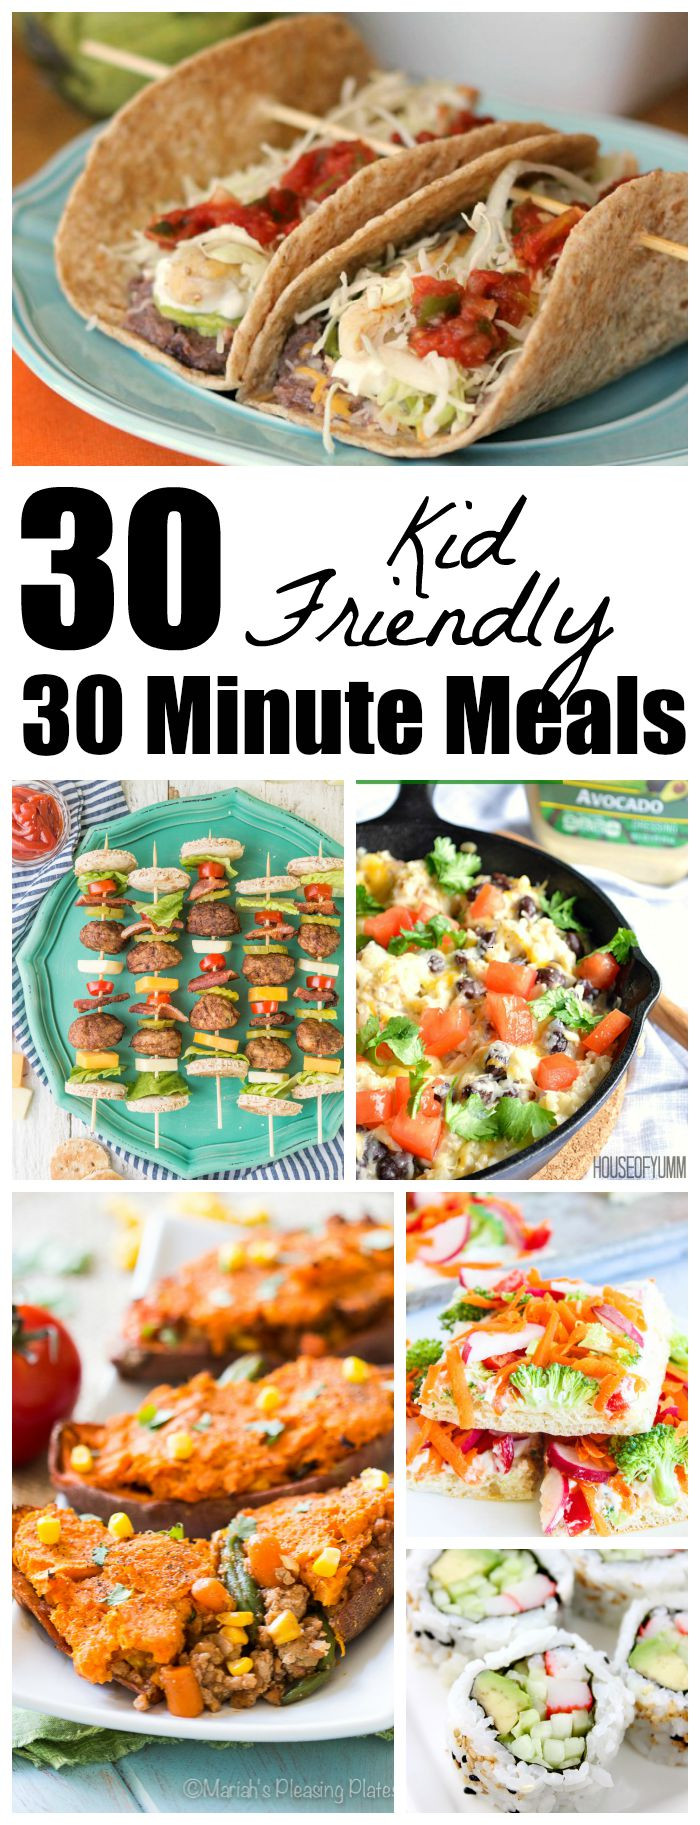 30 Minute Dinners  30 Kid Friendly 30 Minute Meals The Weary Chef